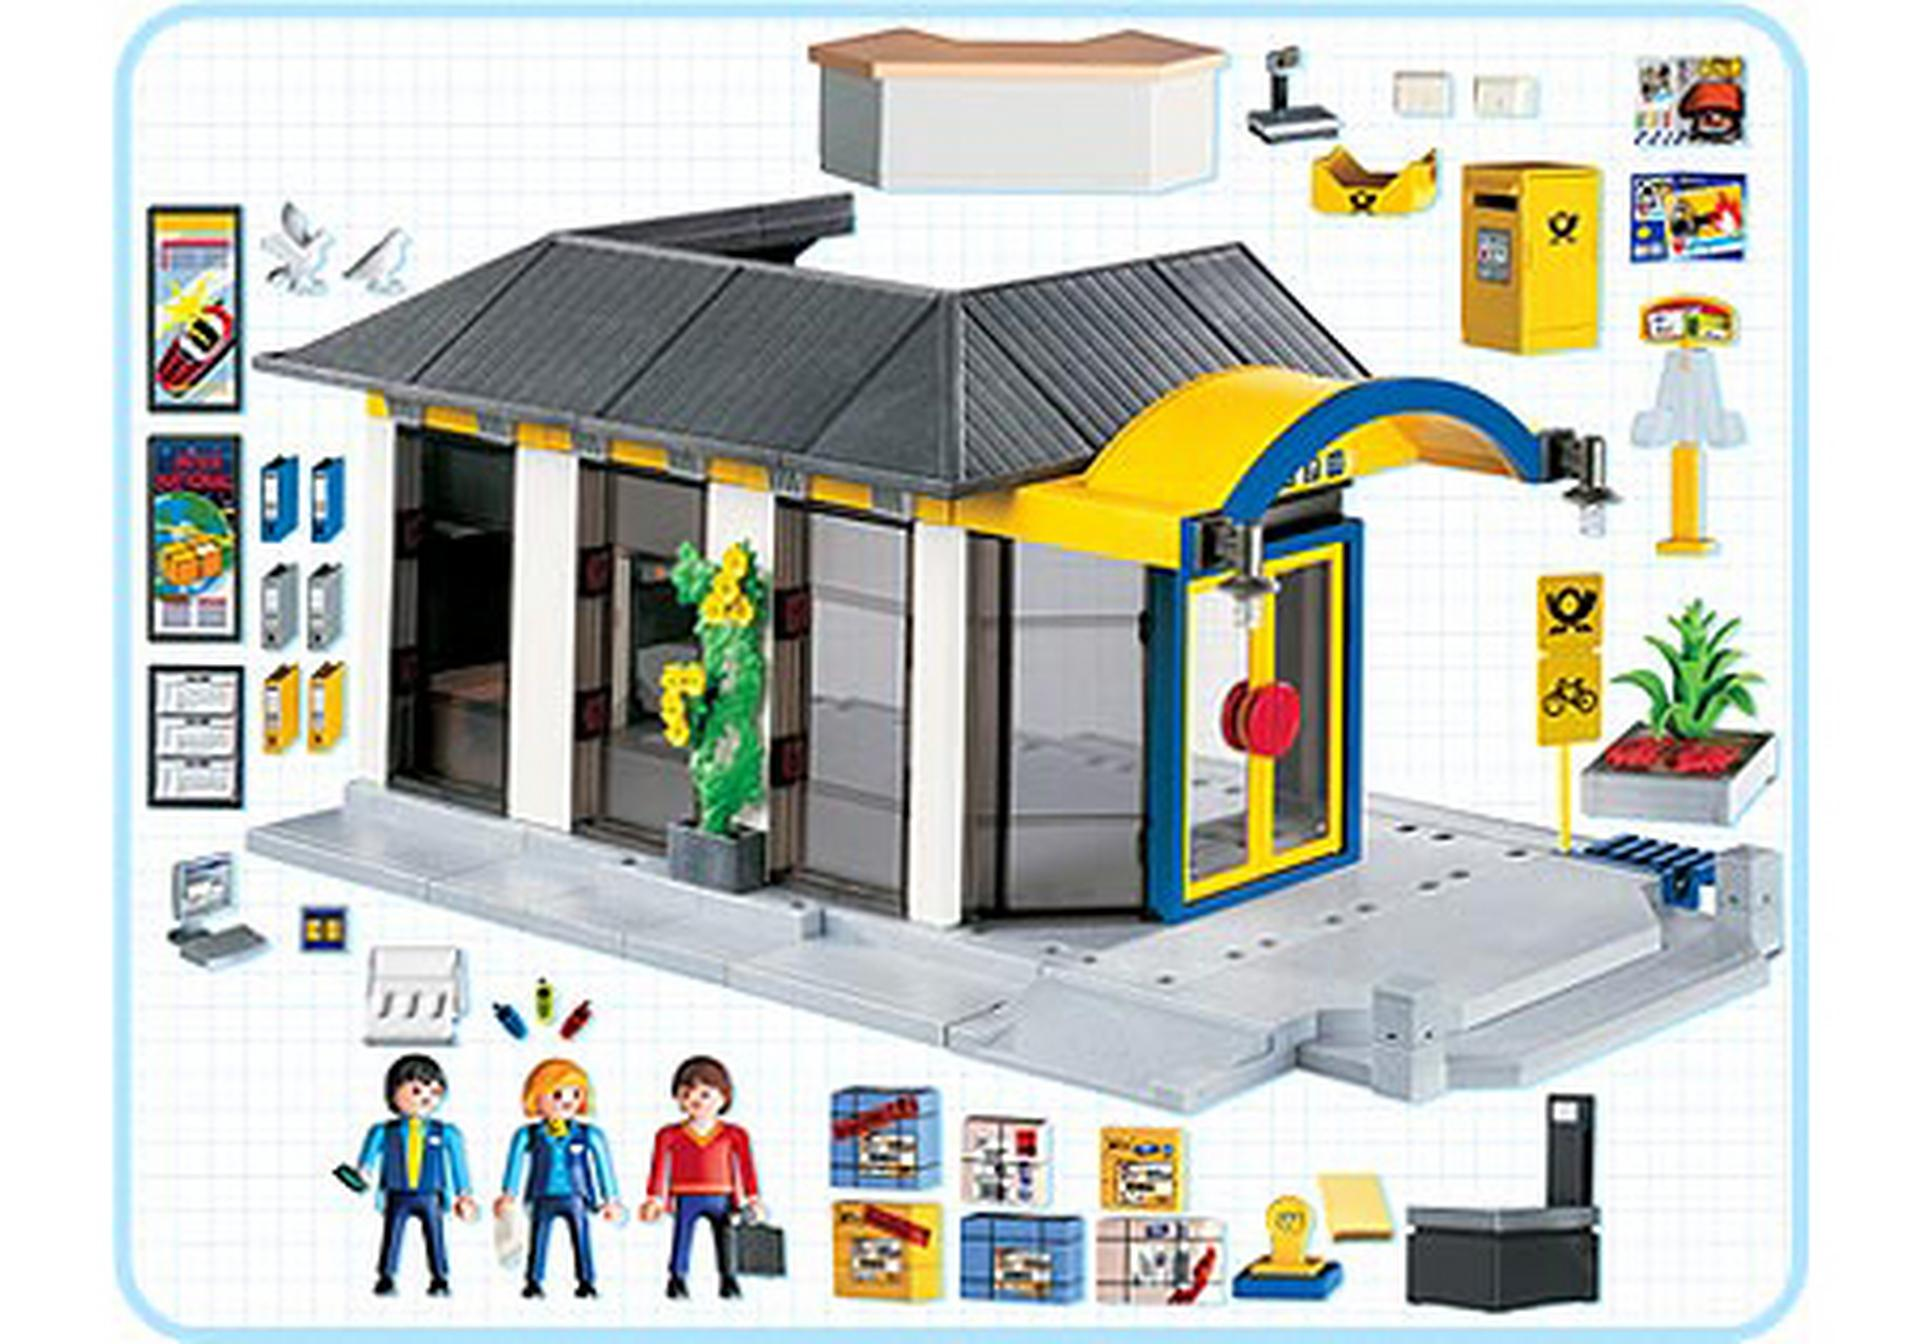 bureau de poste 4400 a playmobil suisse. Black Bedroom Furniture Sets. Home Design Ideas